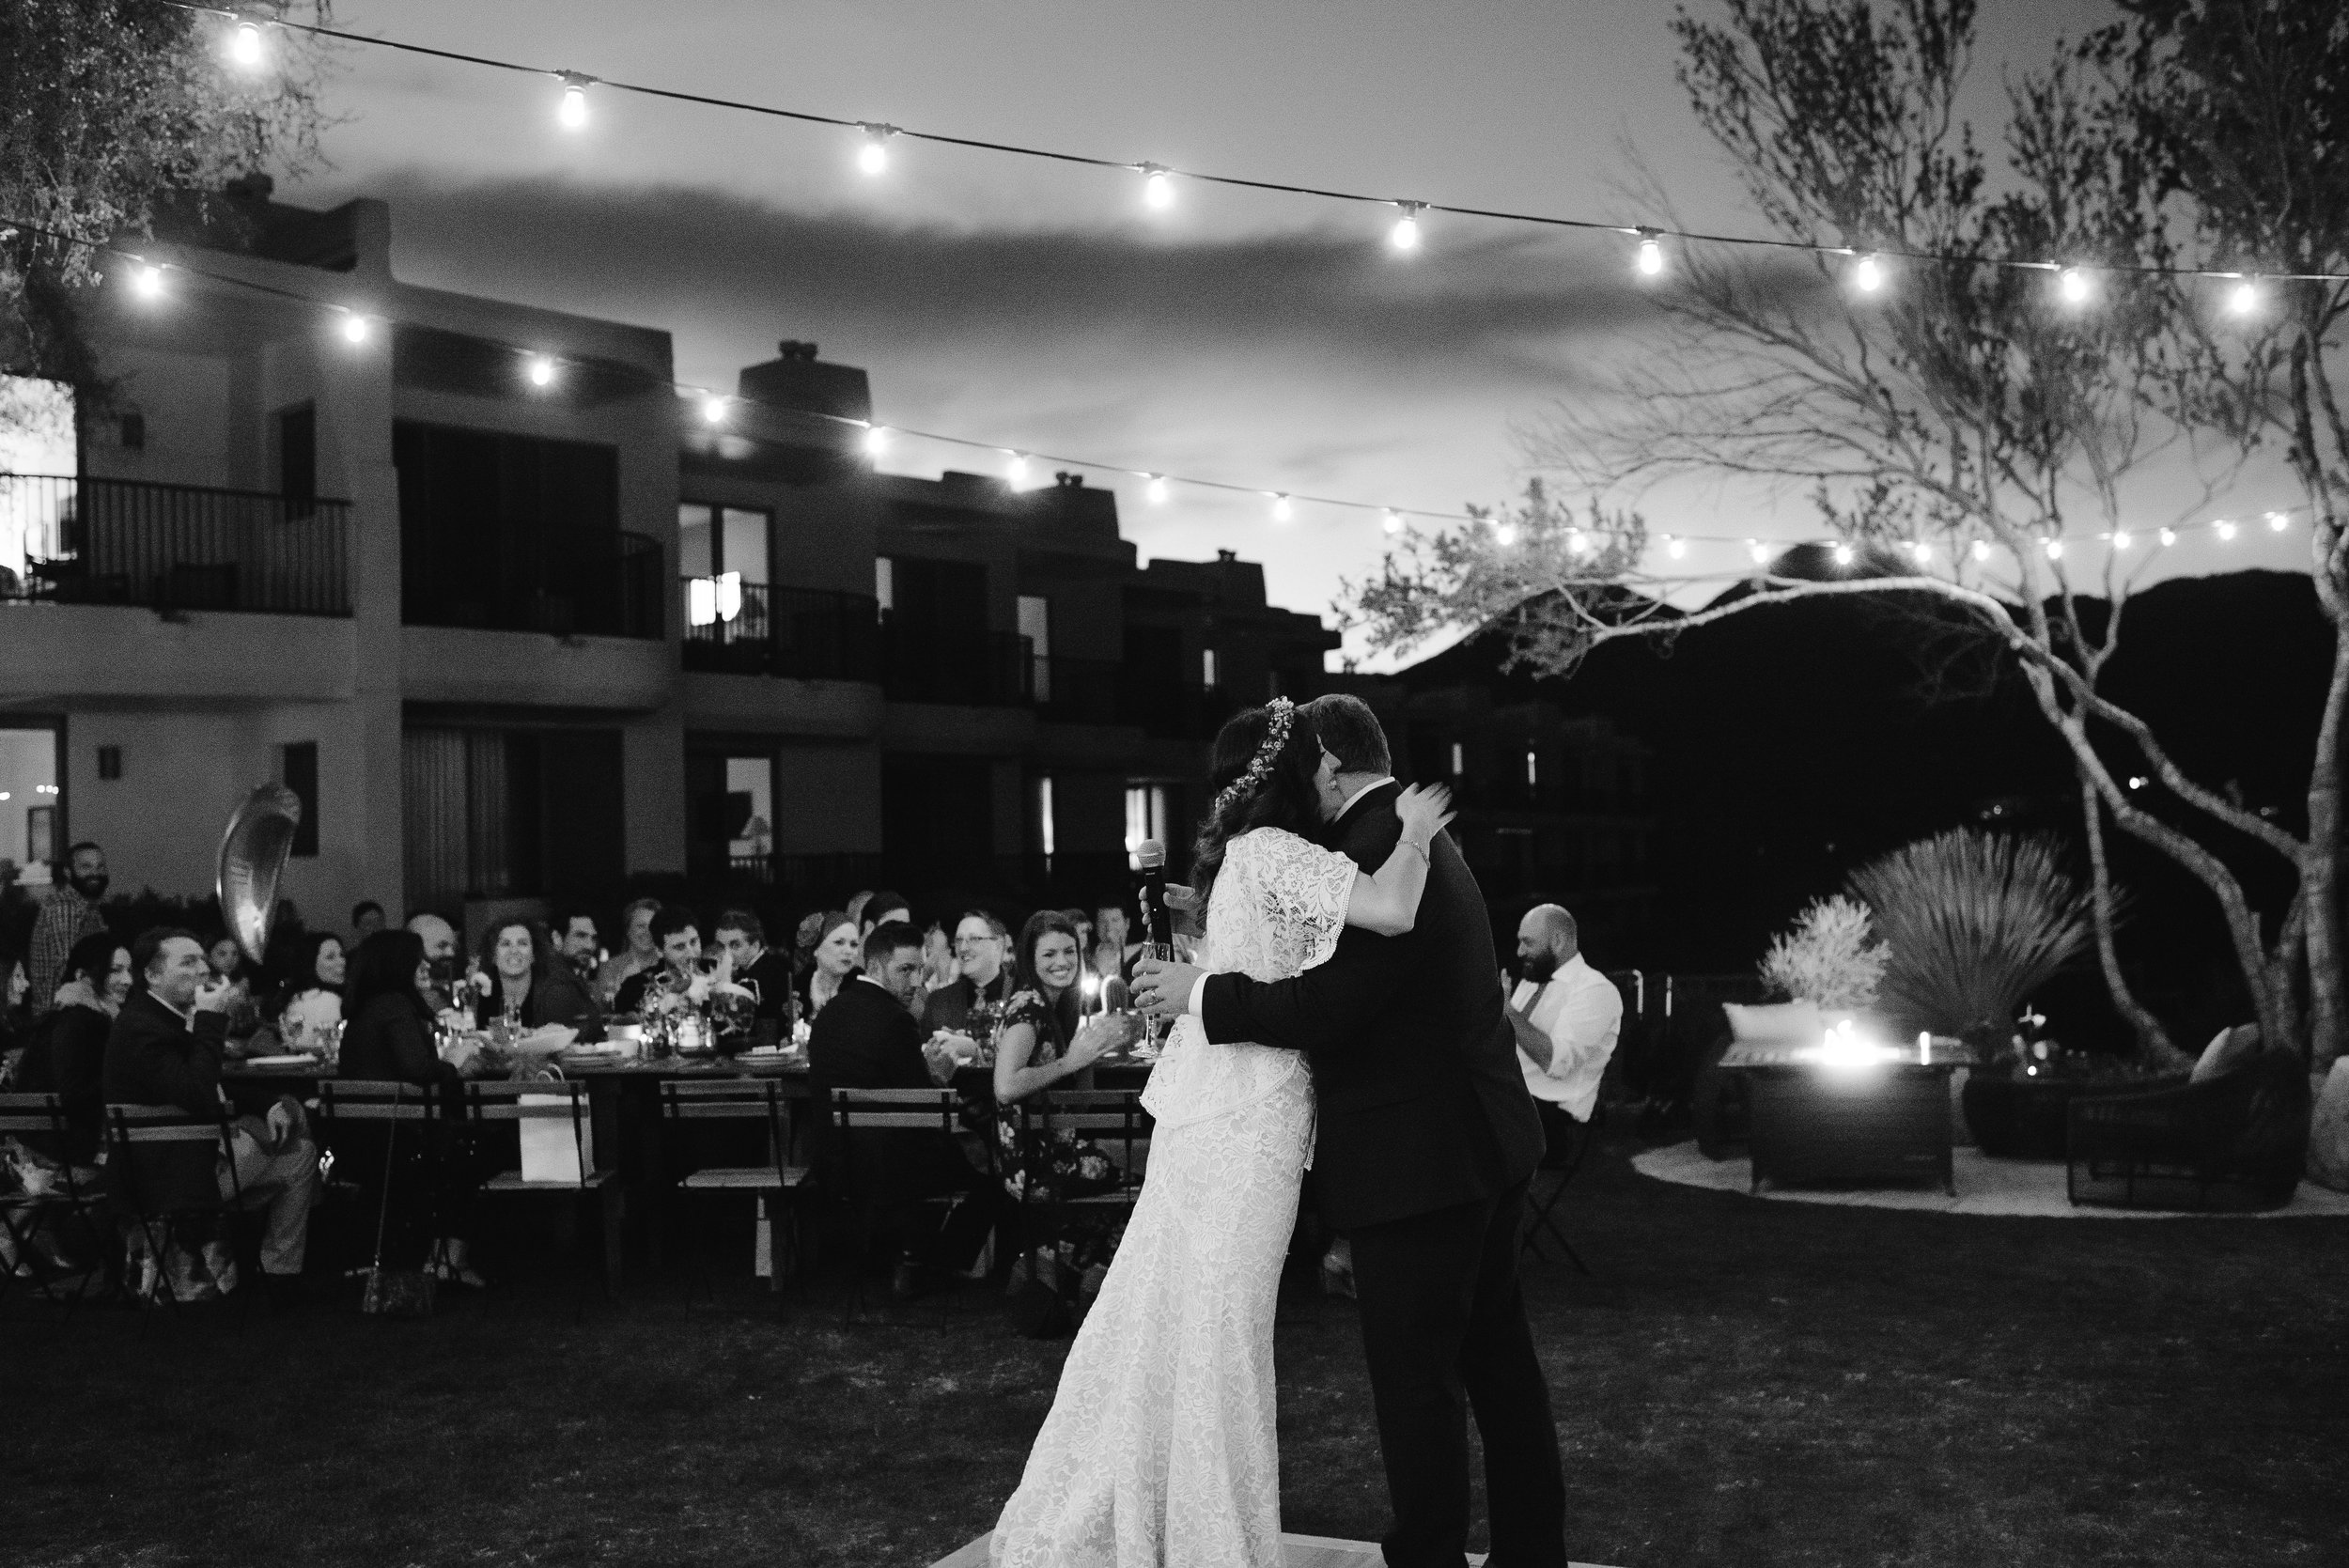 ArizonaWeddingPhotographer_Schad_0960.jpg